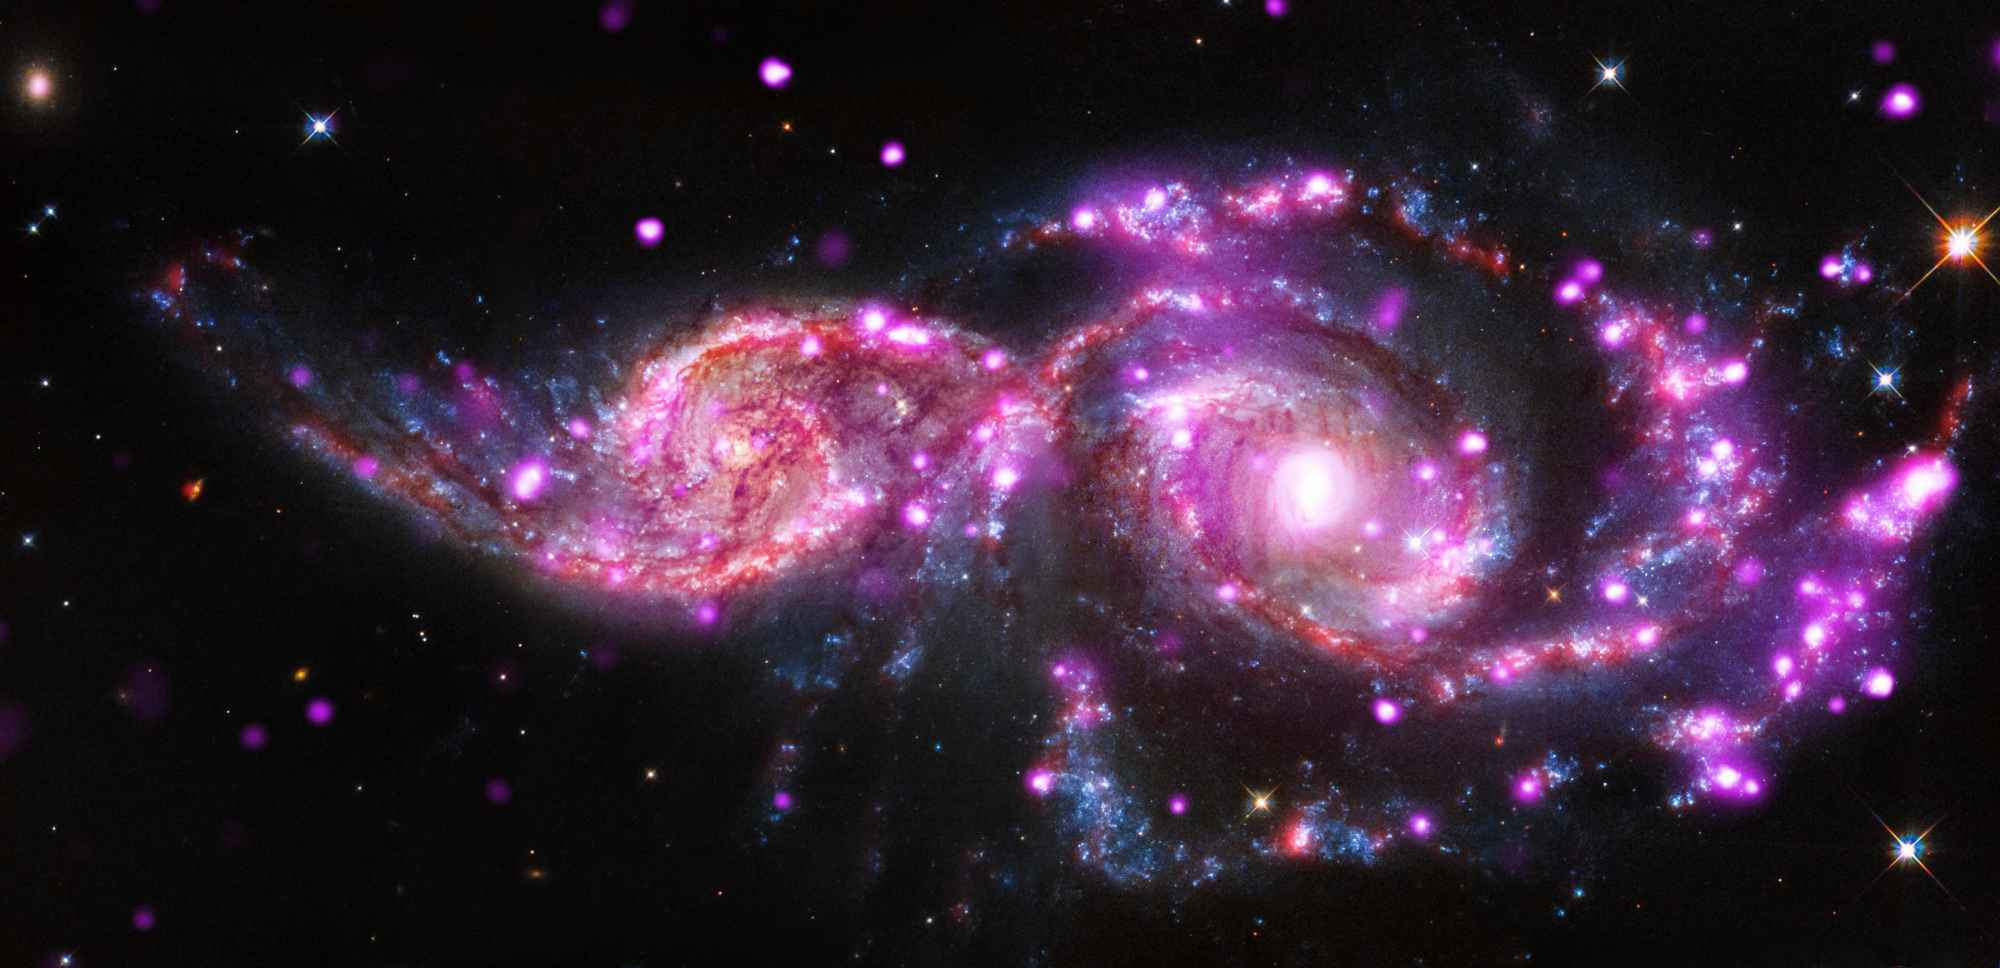 space-shot-galaxies-121814